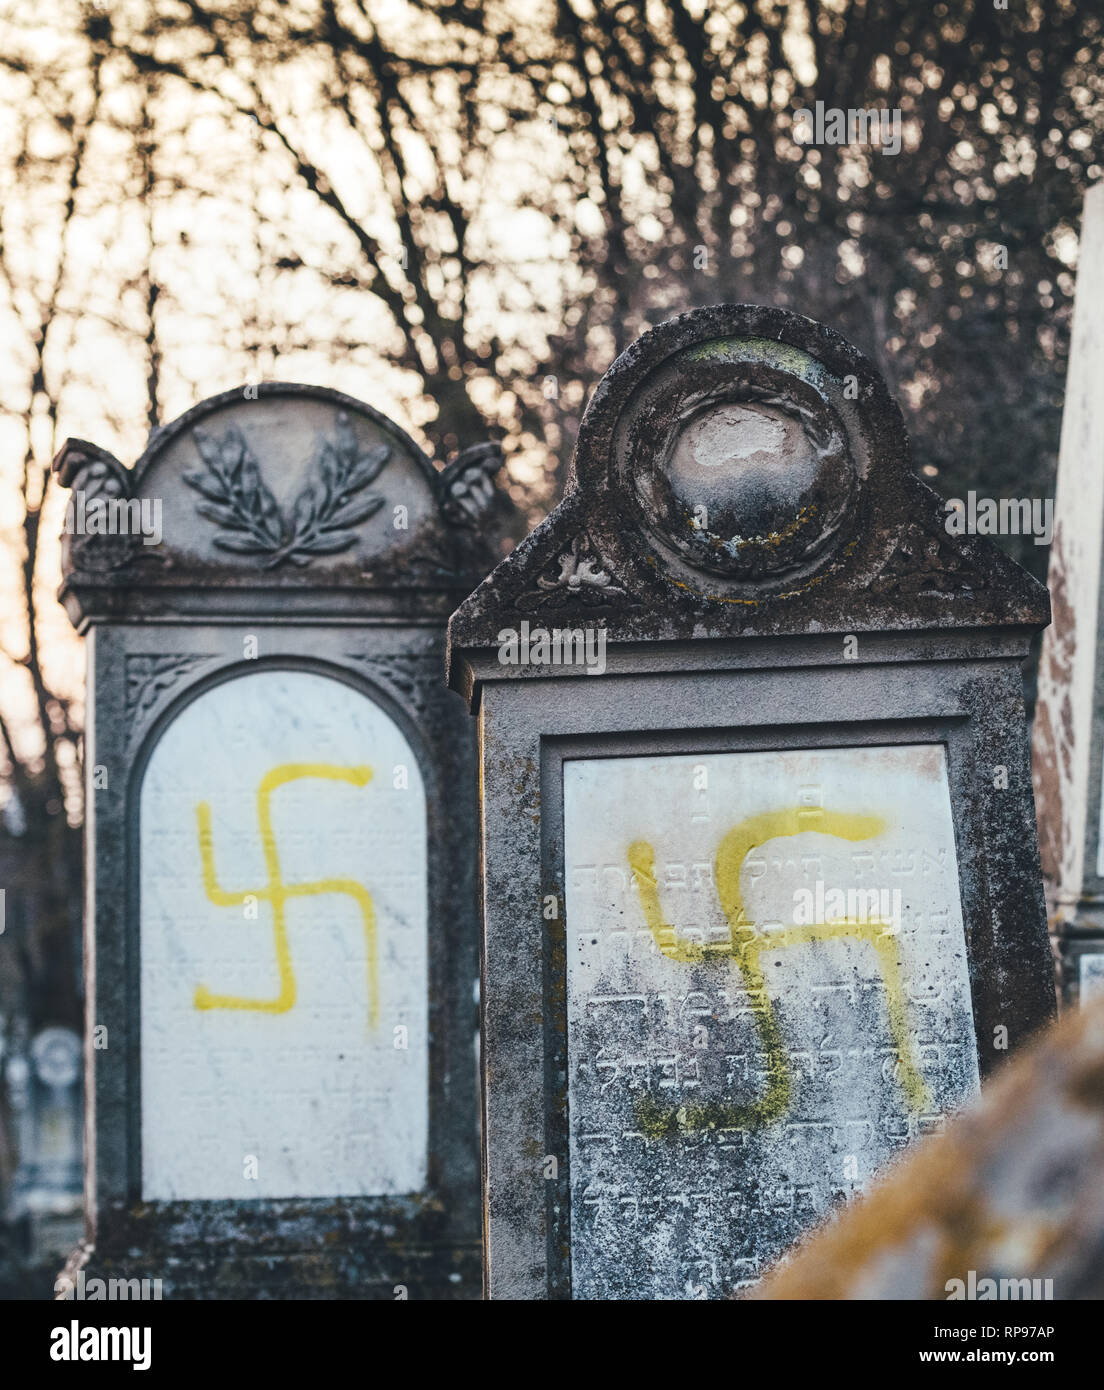 Vertical image of vandalised graves with nazi symbols in